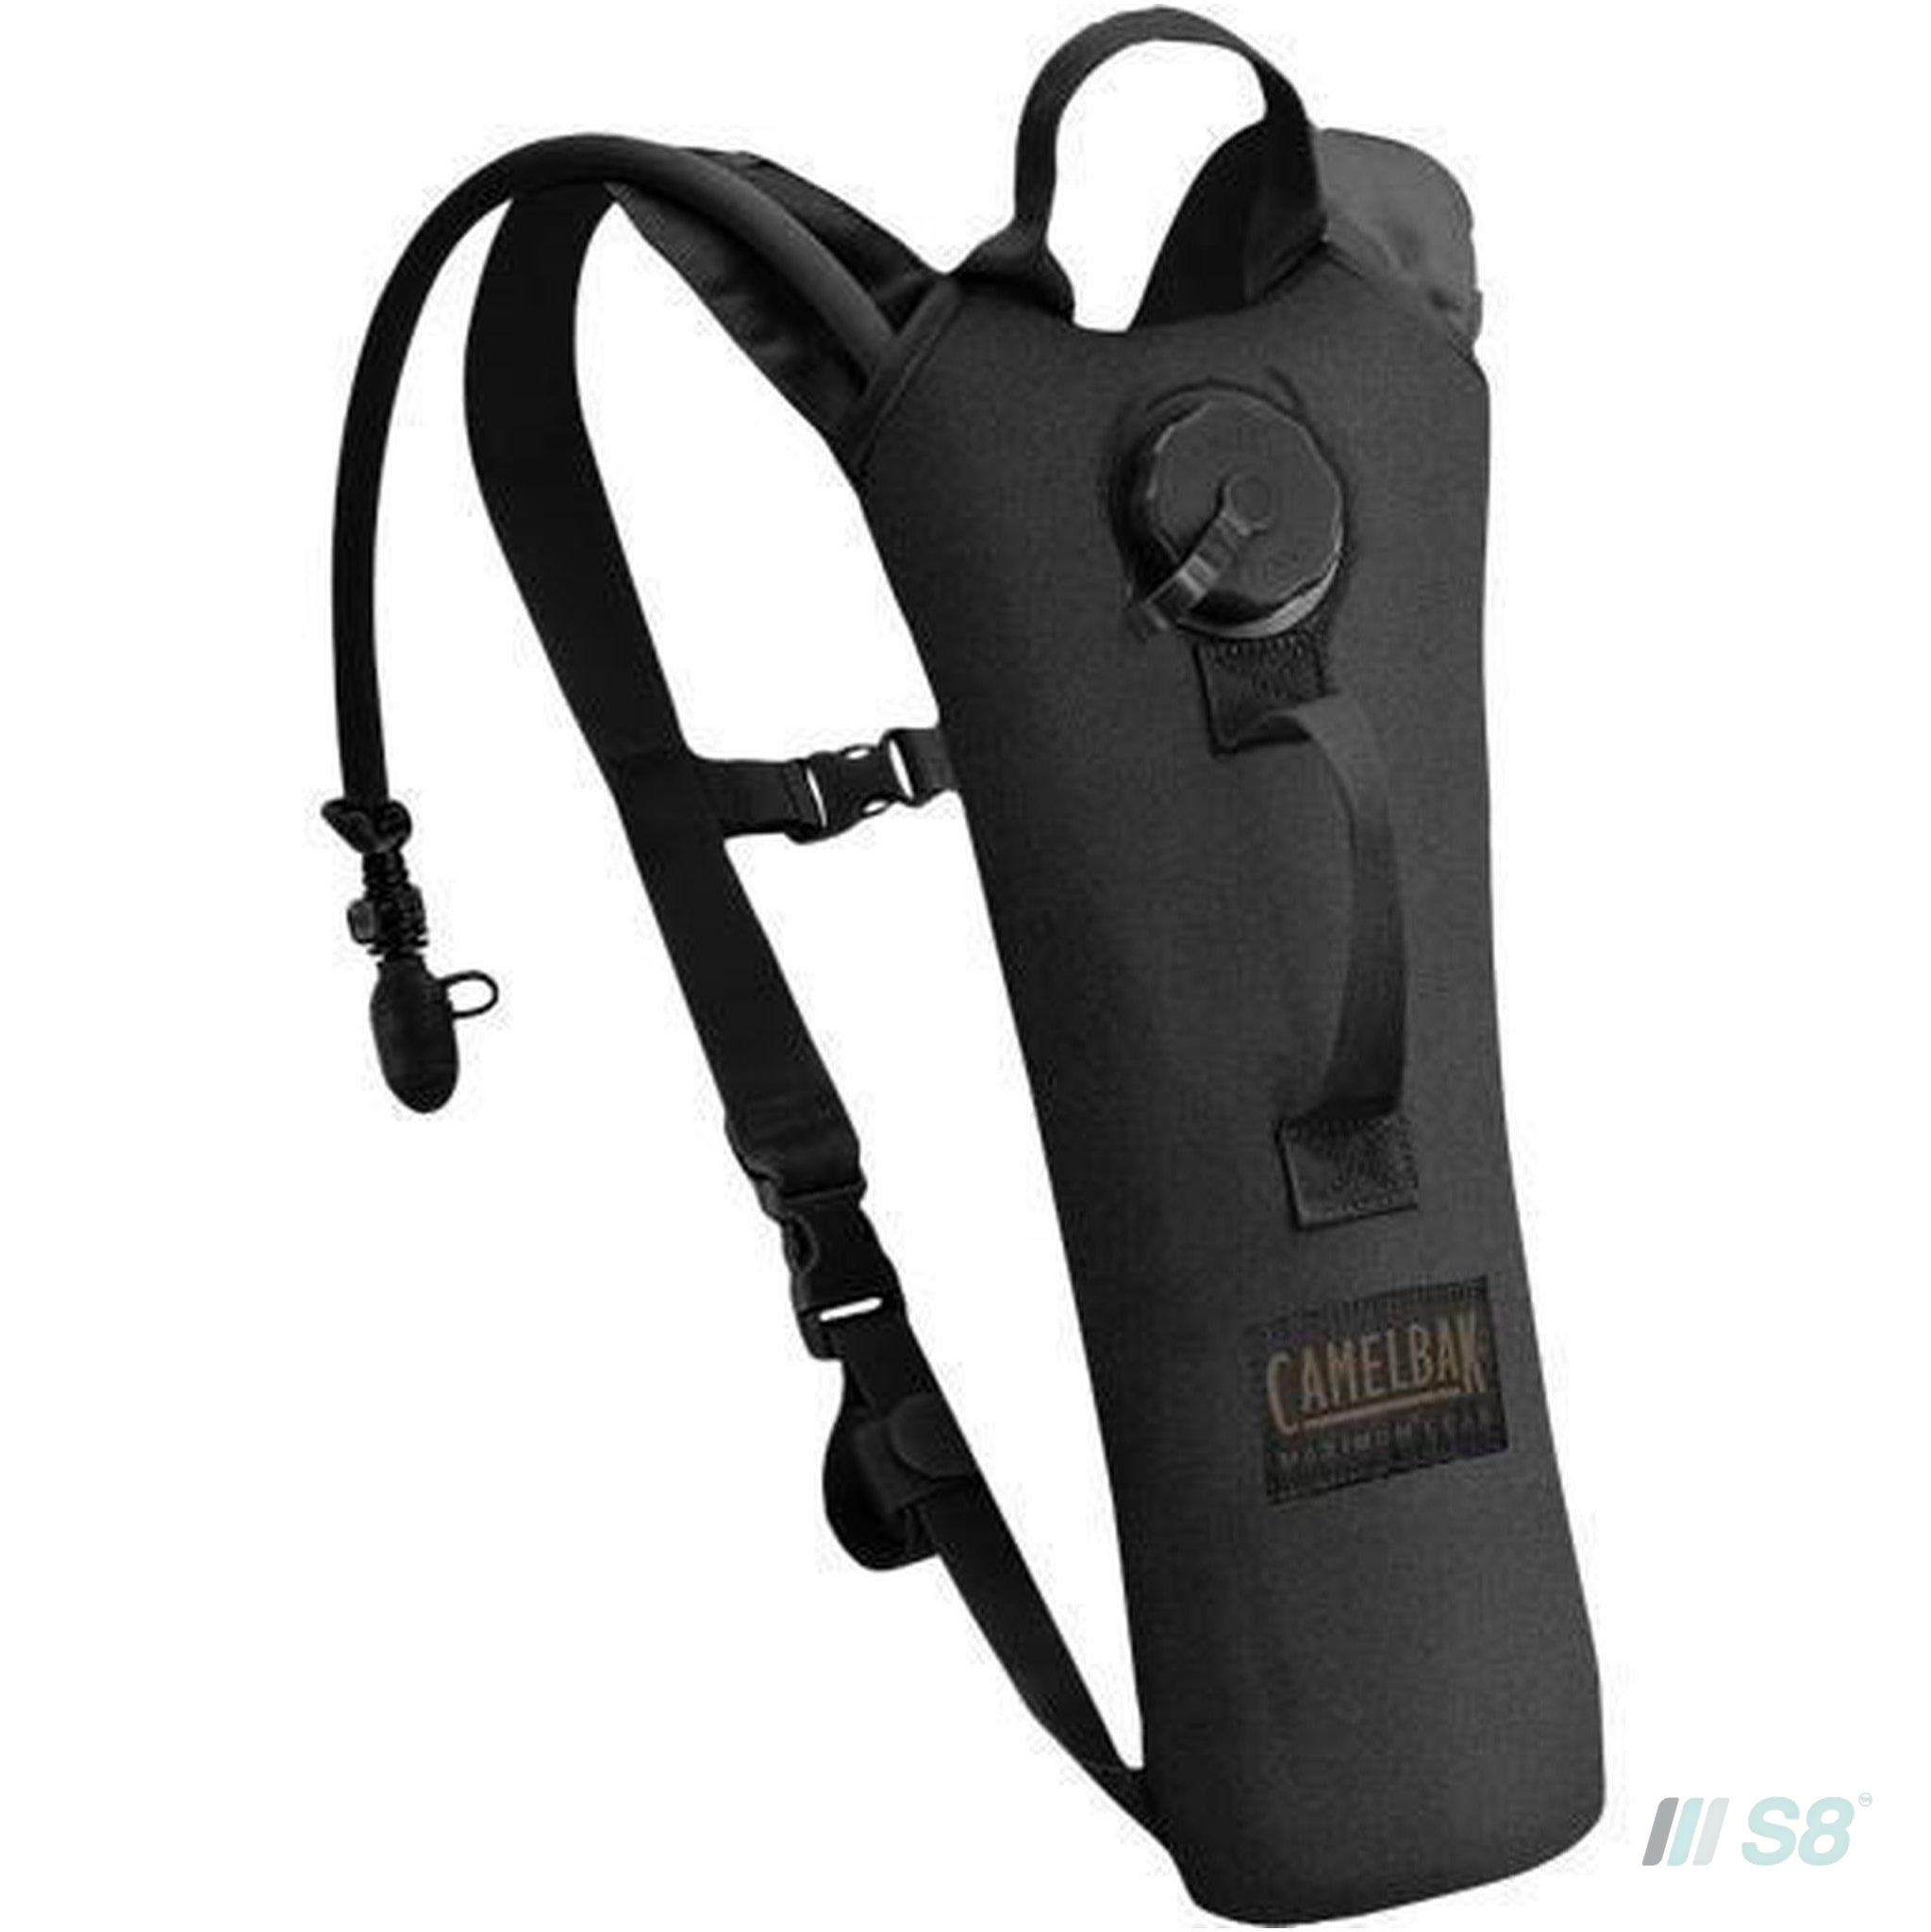 Camelbak Thermobak 2L Military Long Neck Hydration Pack - Black-Camelbak-S8 Products Group